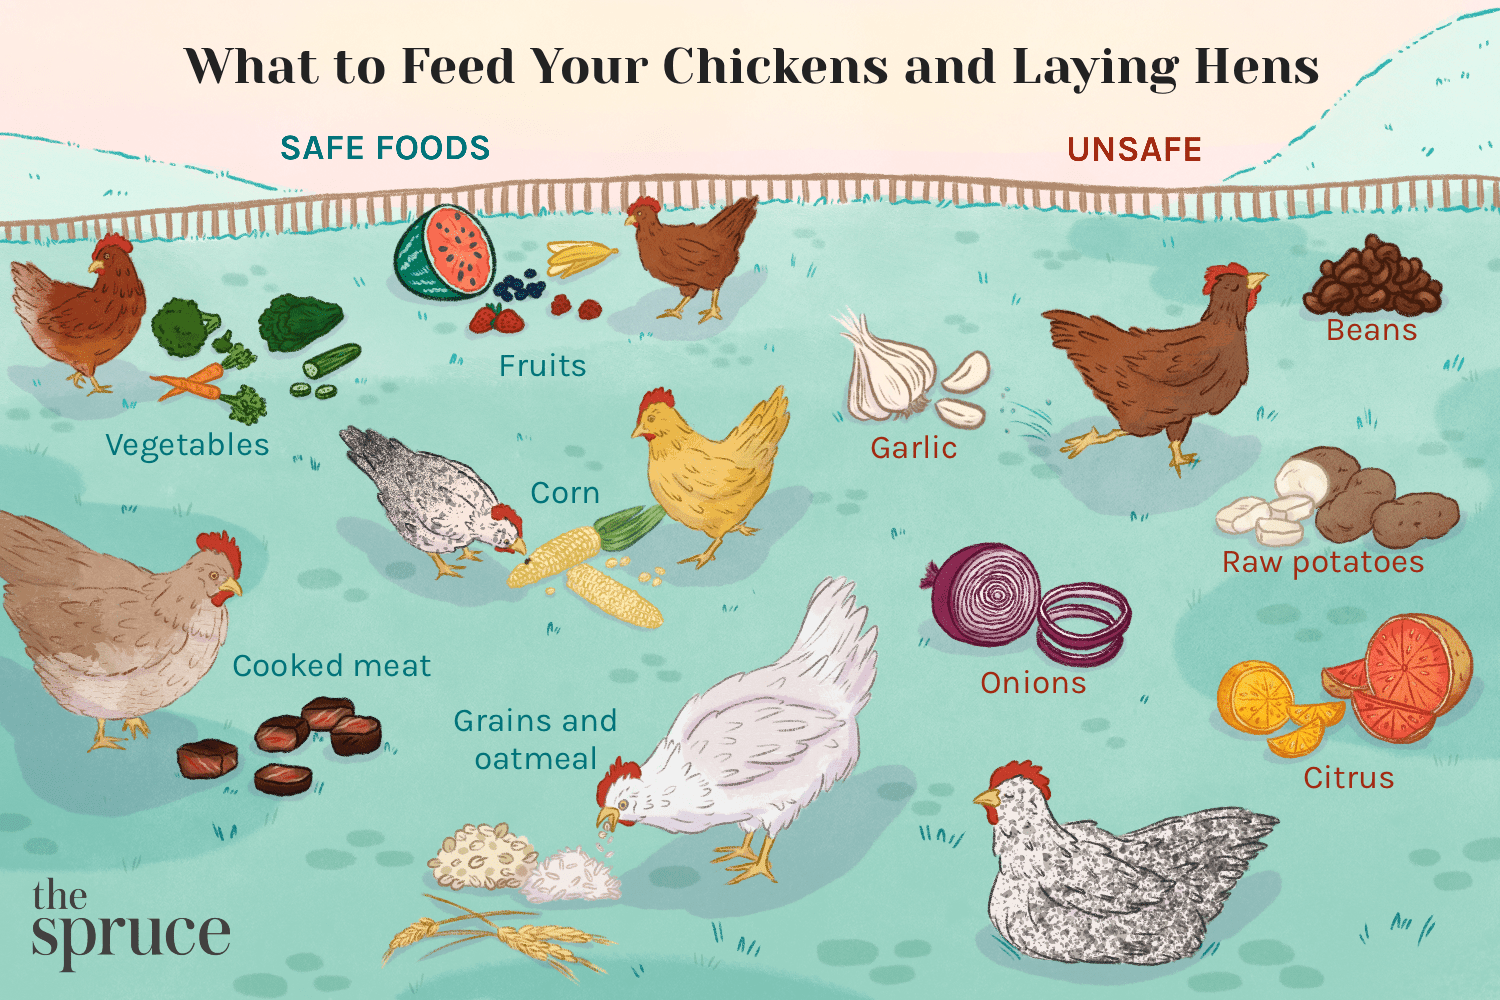 What to Feed Your Chickens and Laying Hens